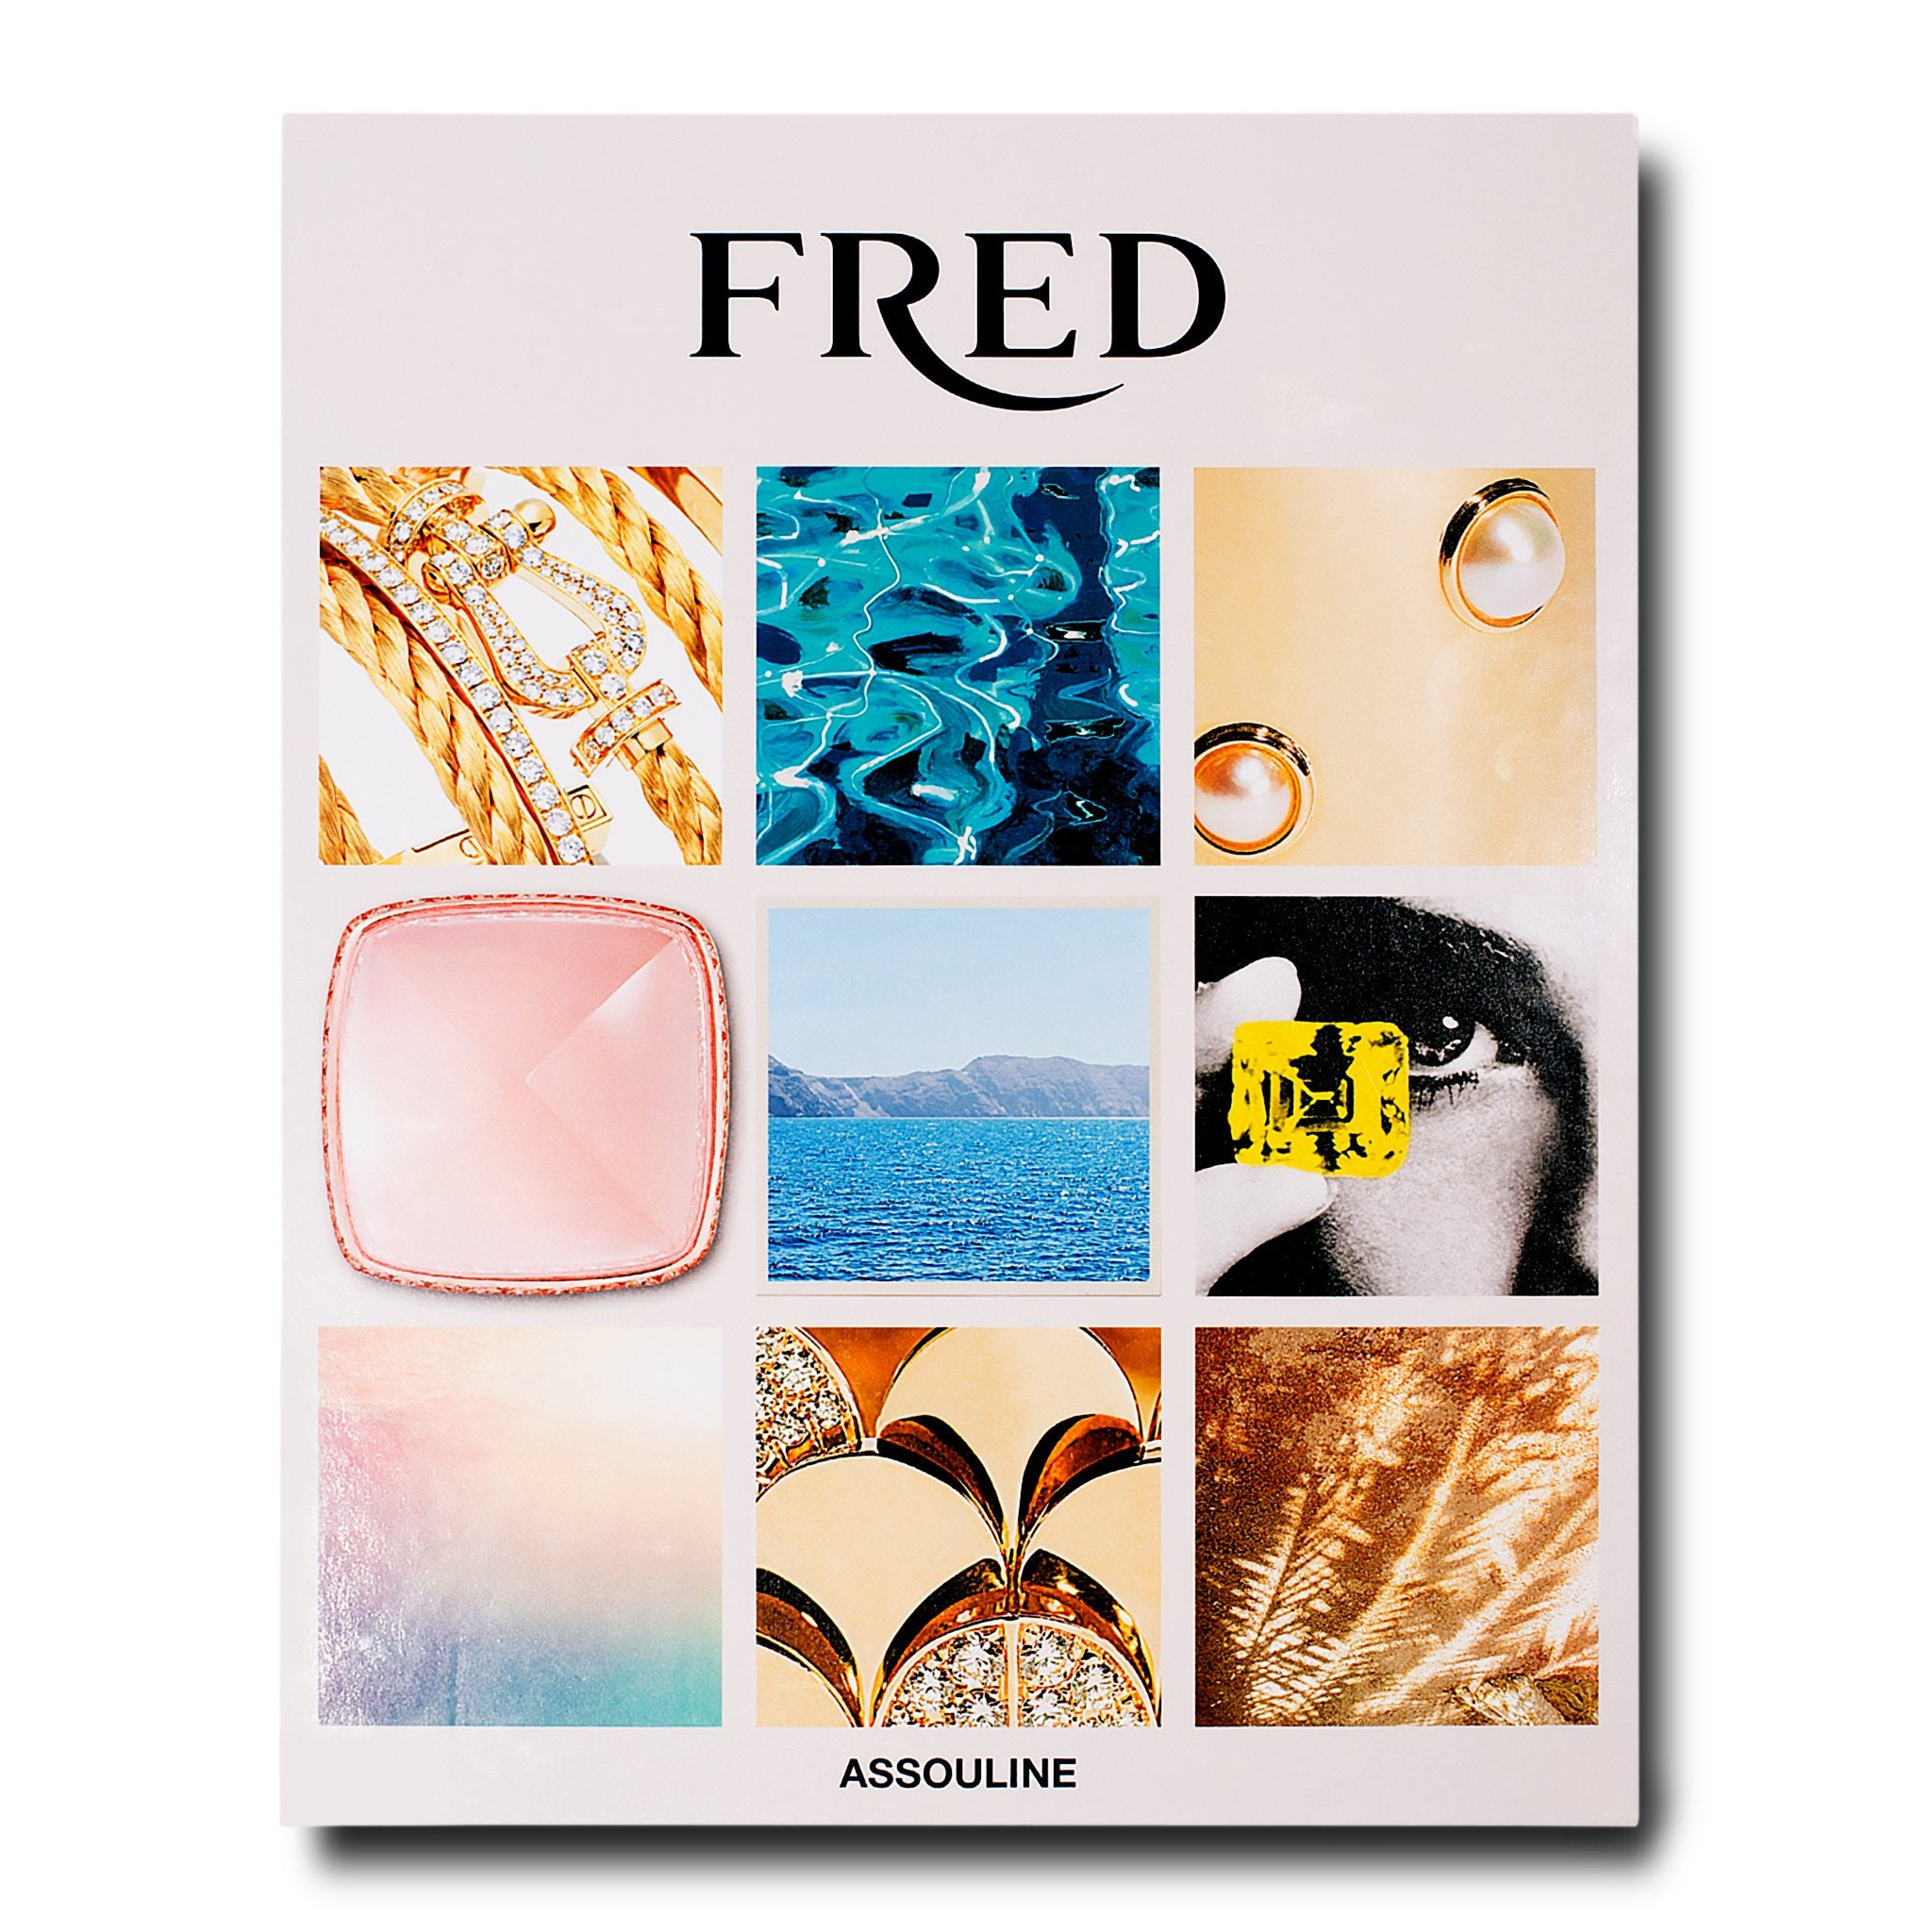 Fred - Assouline